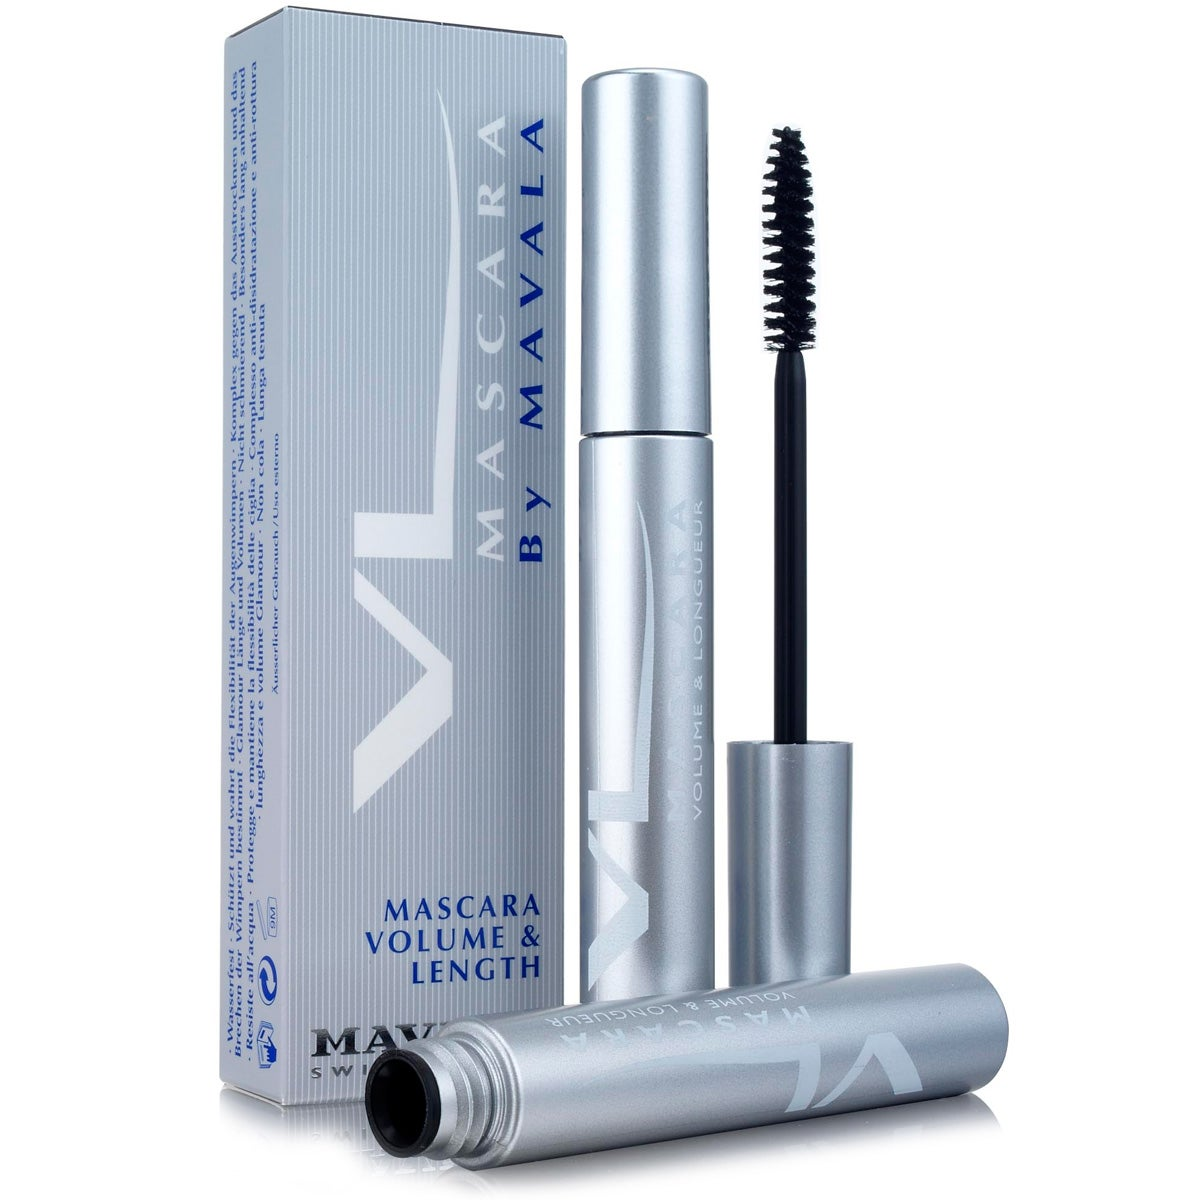 Mavala Mascara Volume & Length